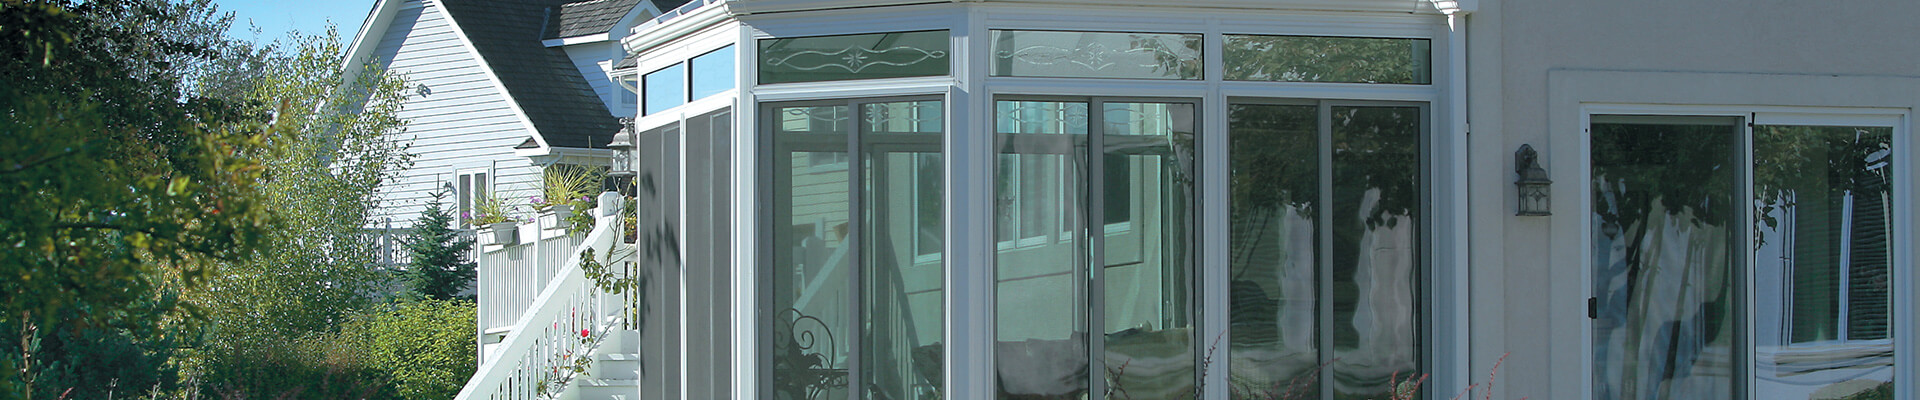 Conservatory sunrooms edwardian and victorian sunroom for Victorian sunroom designs